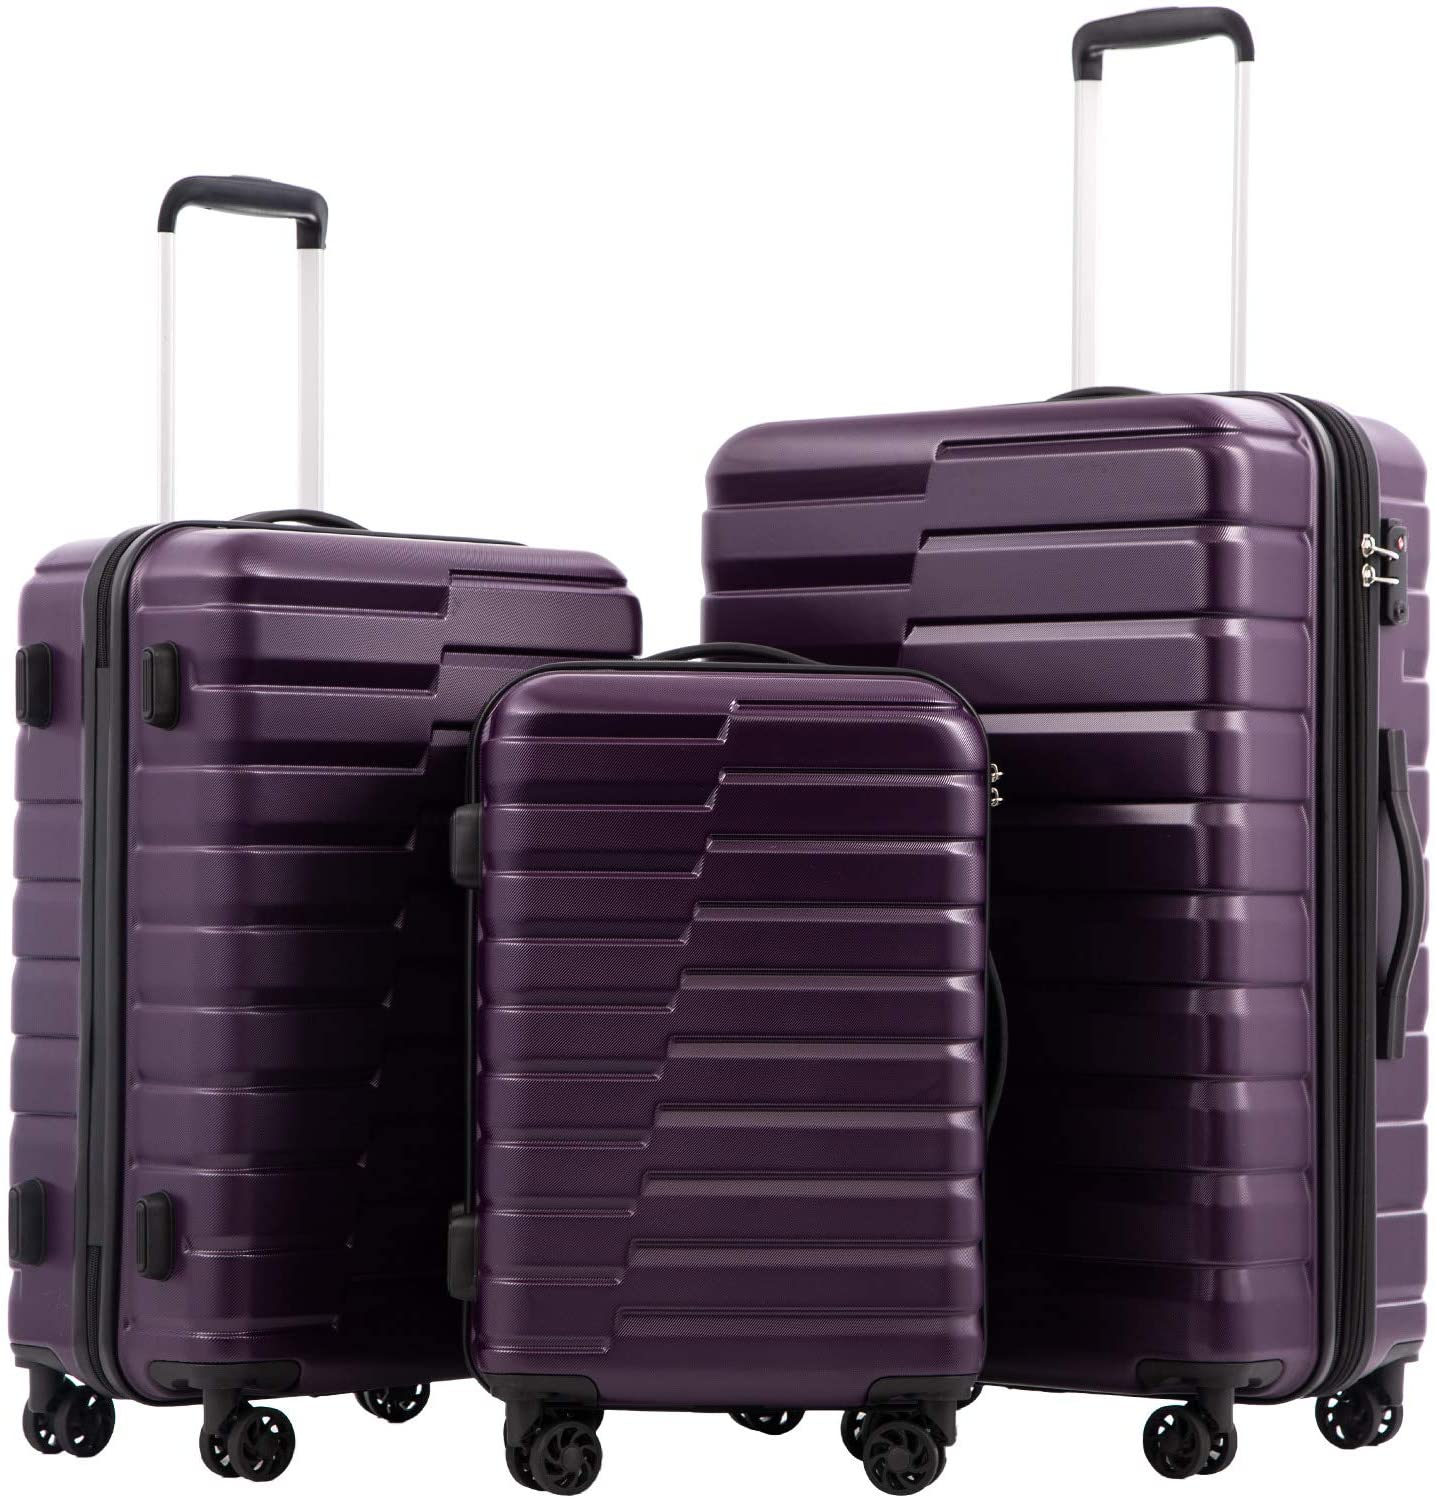 COOLIFE Luggage Expandable Inexpensive only 28'' Suitcase Award-winning store ABS Lock S TSA PC